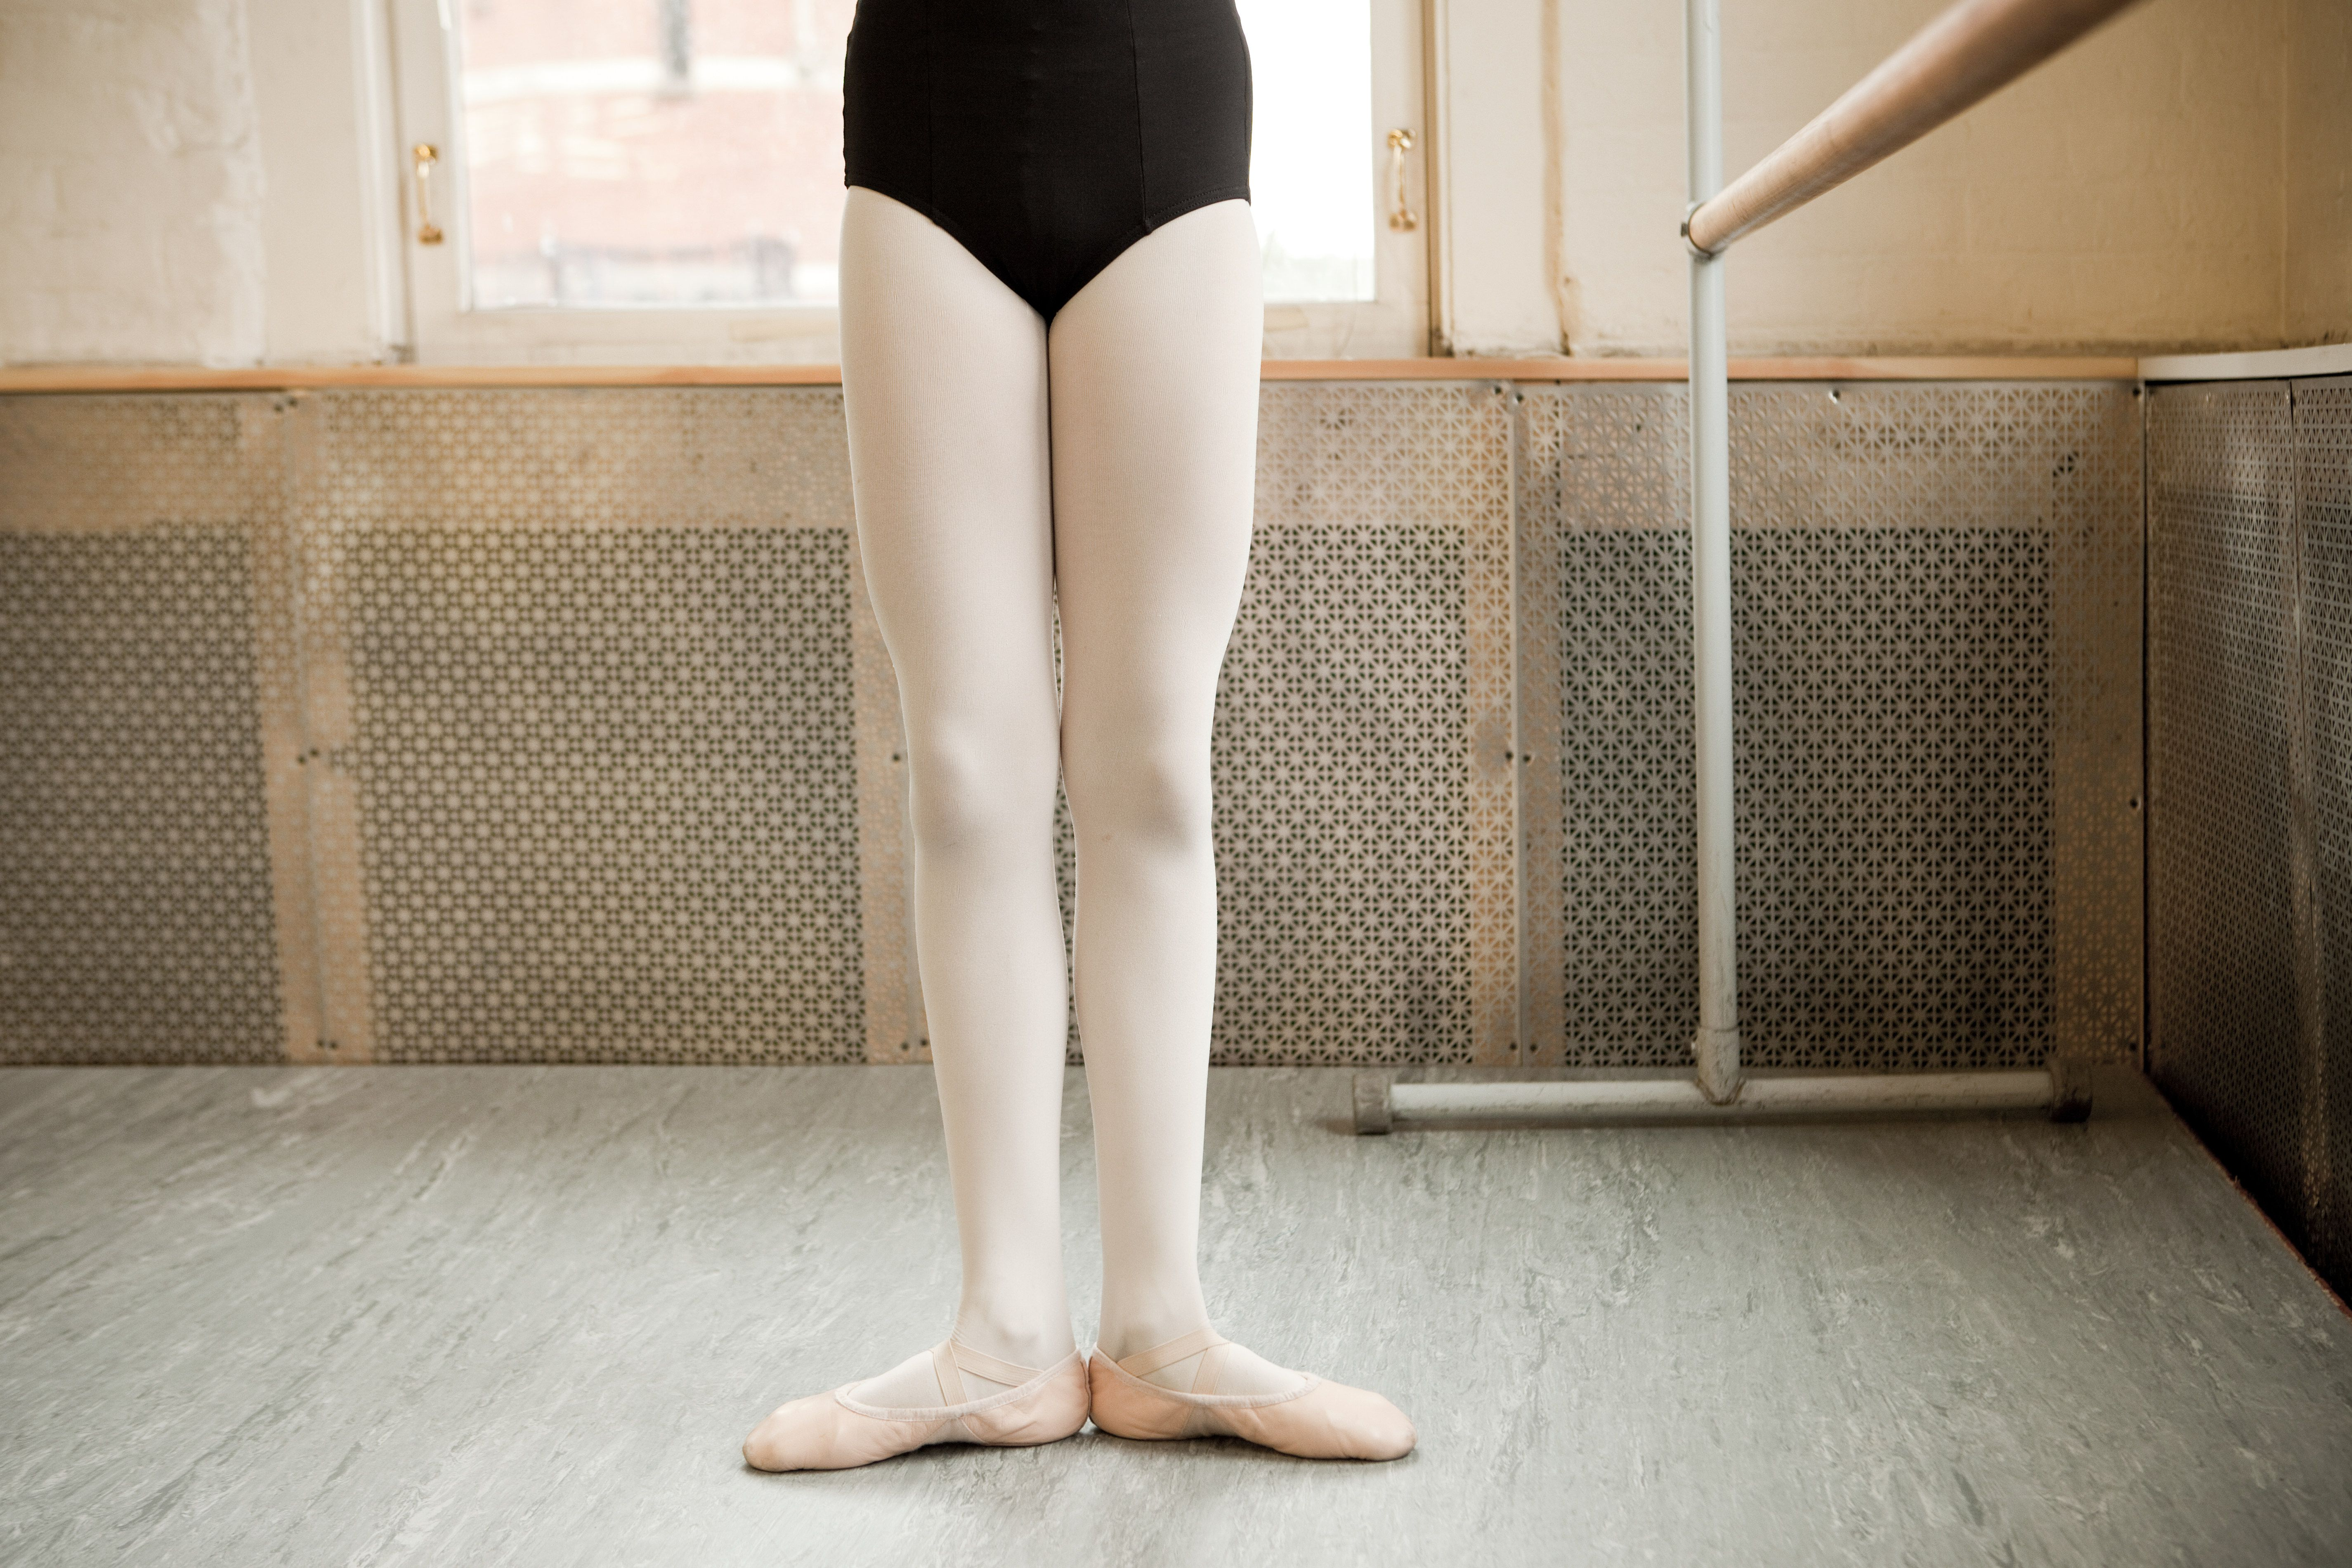 Legs of a ballerina with feet in first position